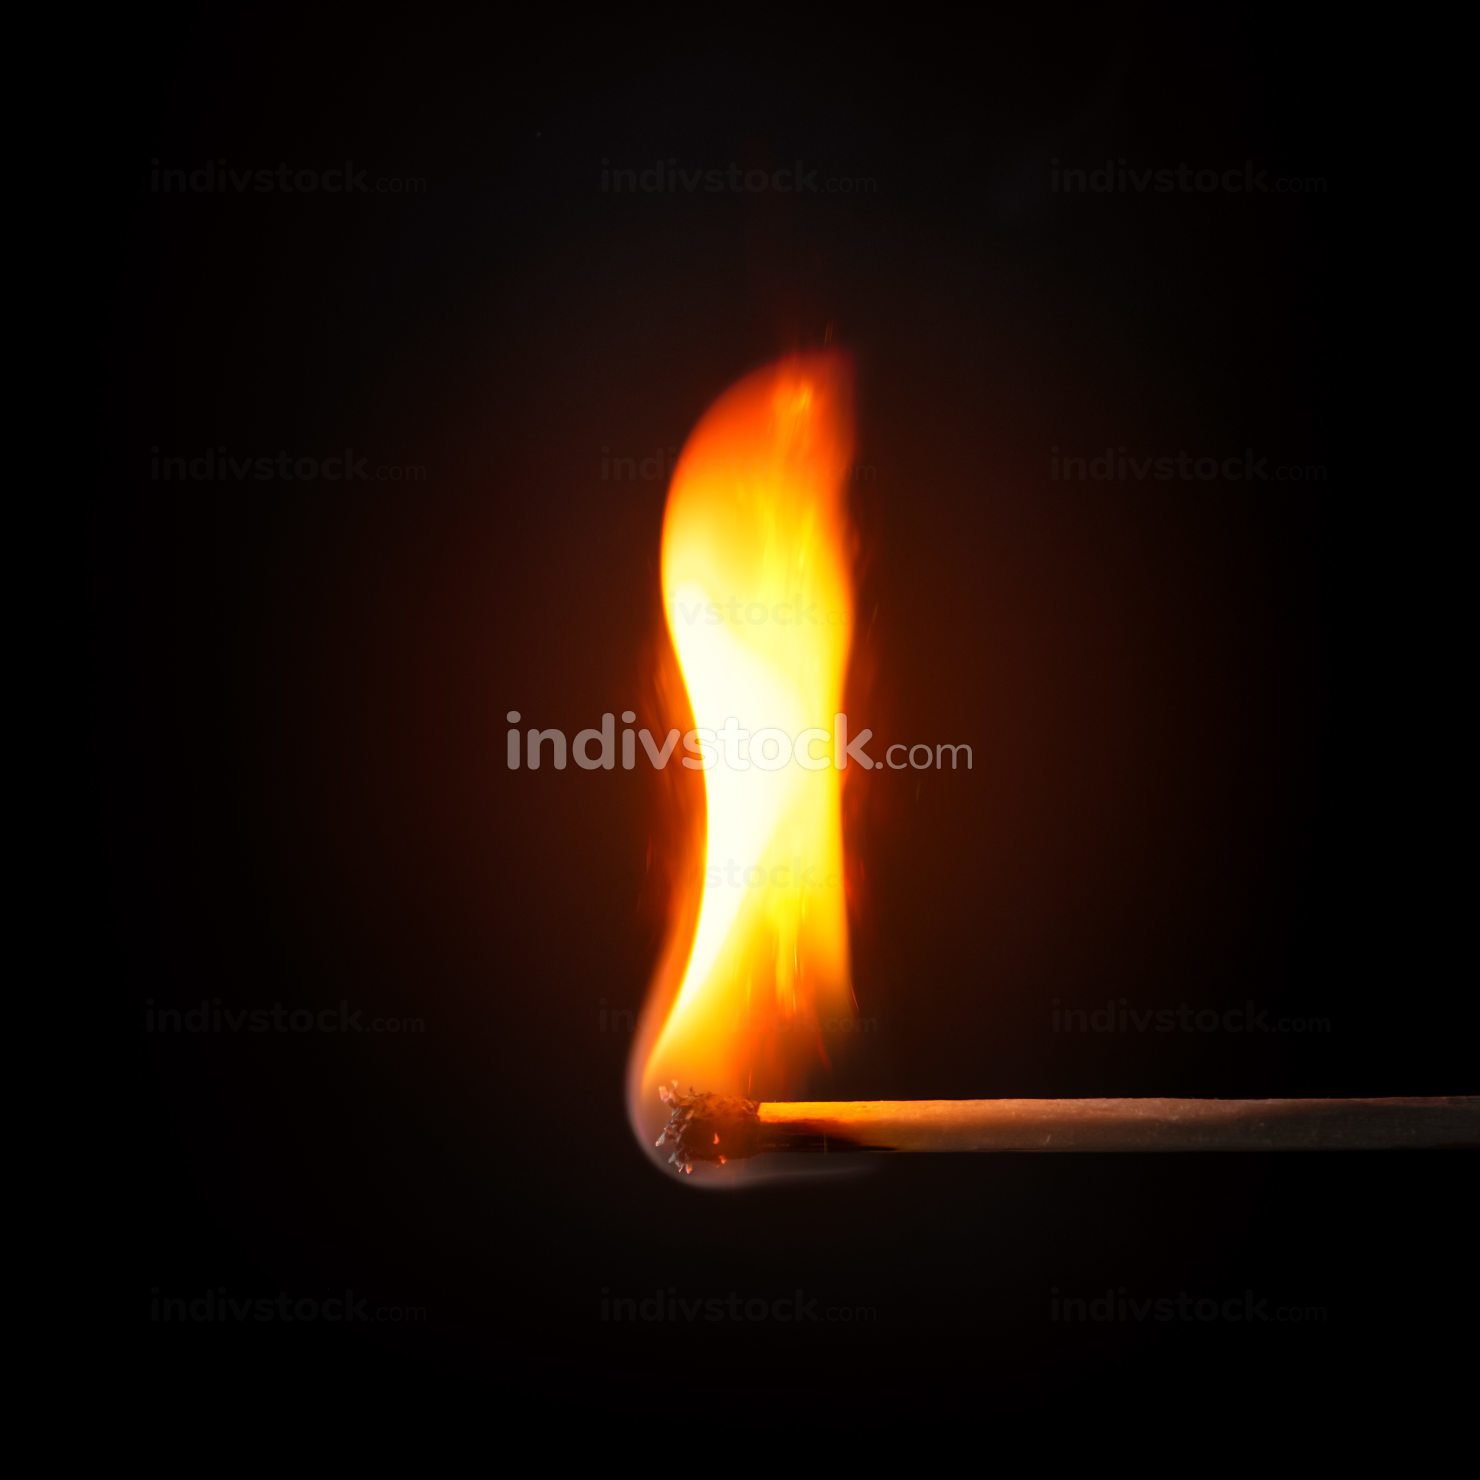 match stick flame in front of a black background